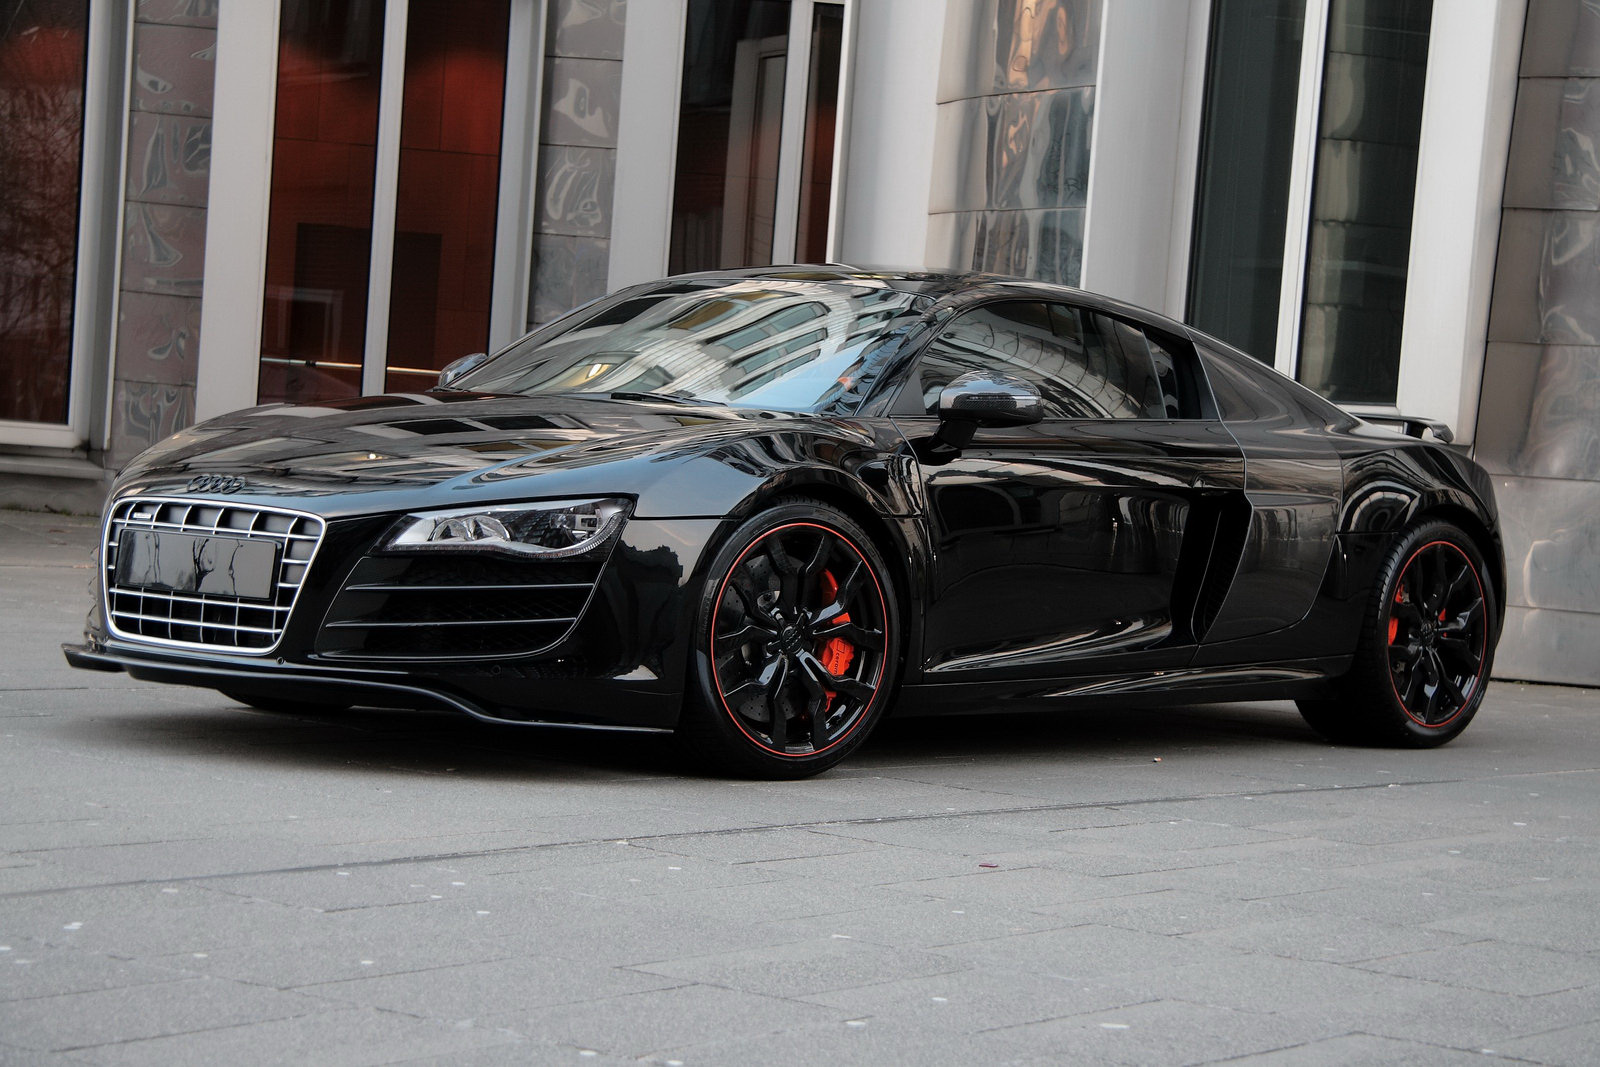 audi r8 v10 spyder black. Black Bedroom Furniture Sets. Home Design Ideas